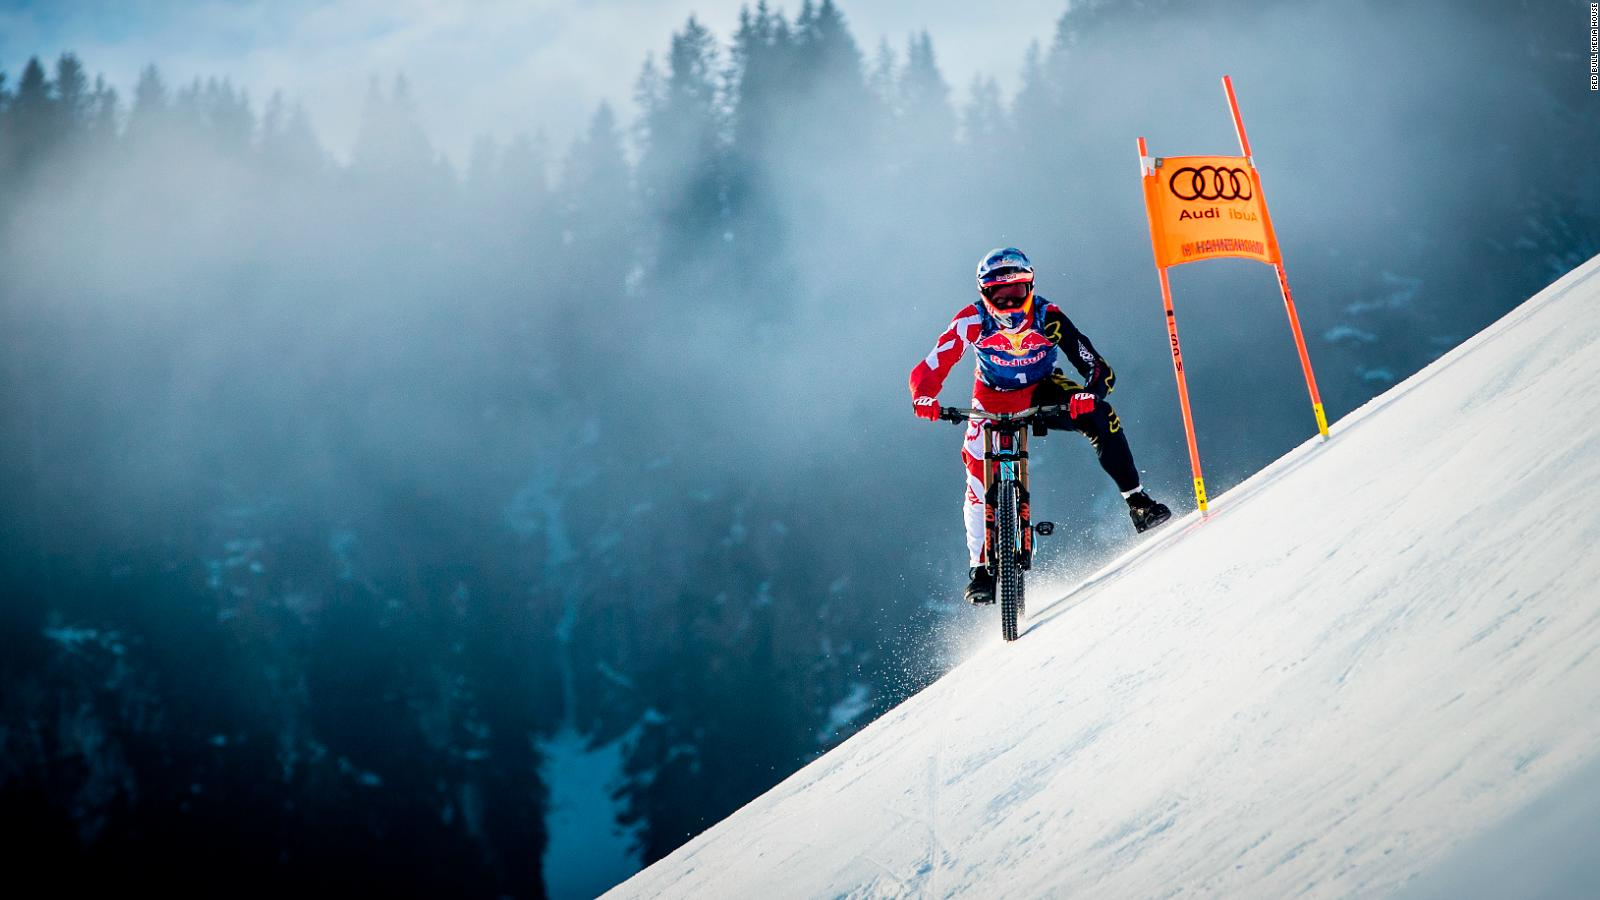 Kitzbuhel Mountain Biker Max Stockl Conquers Worlds Toughest Ski Run